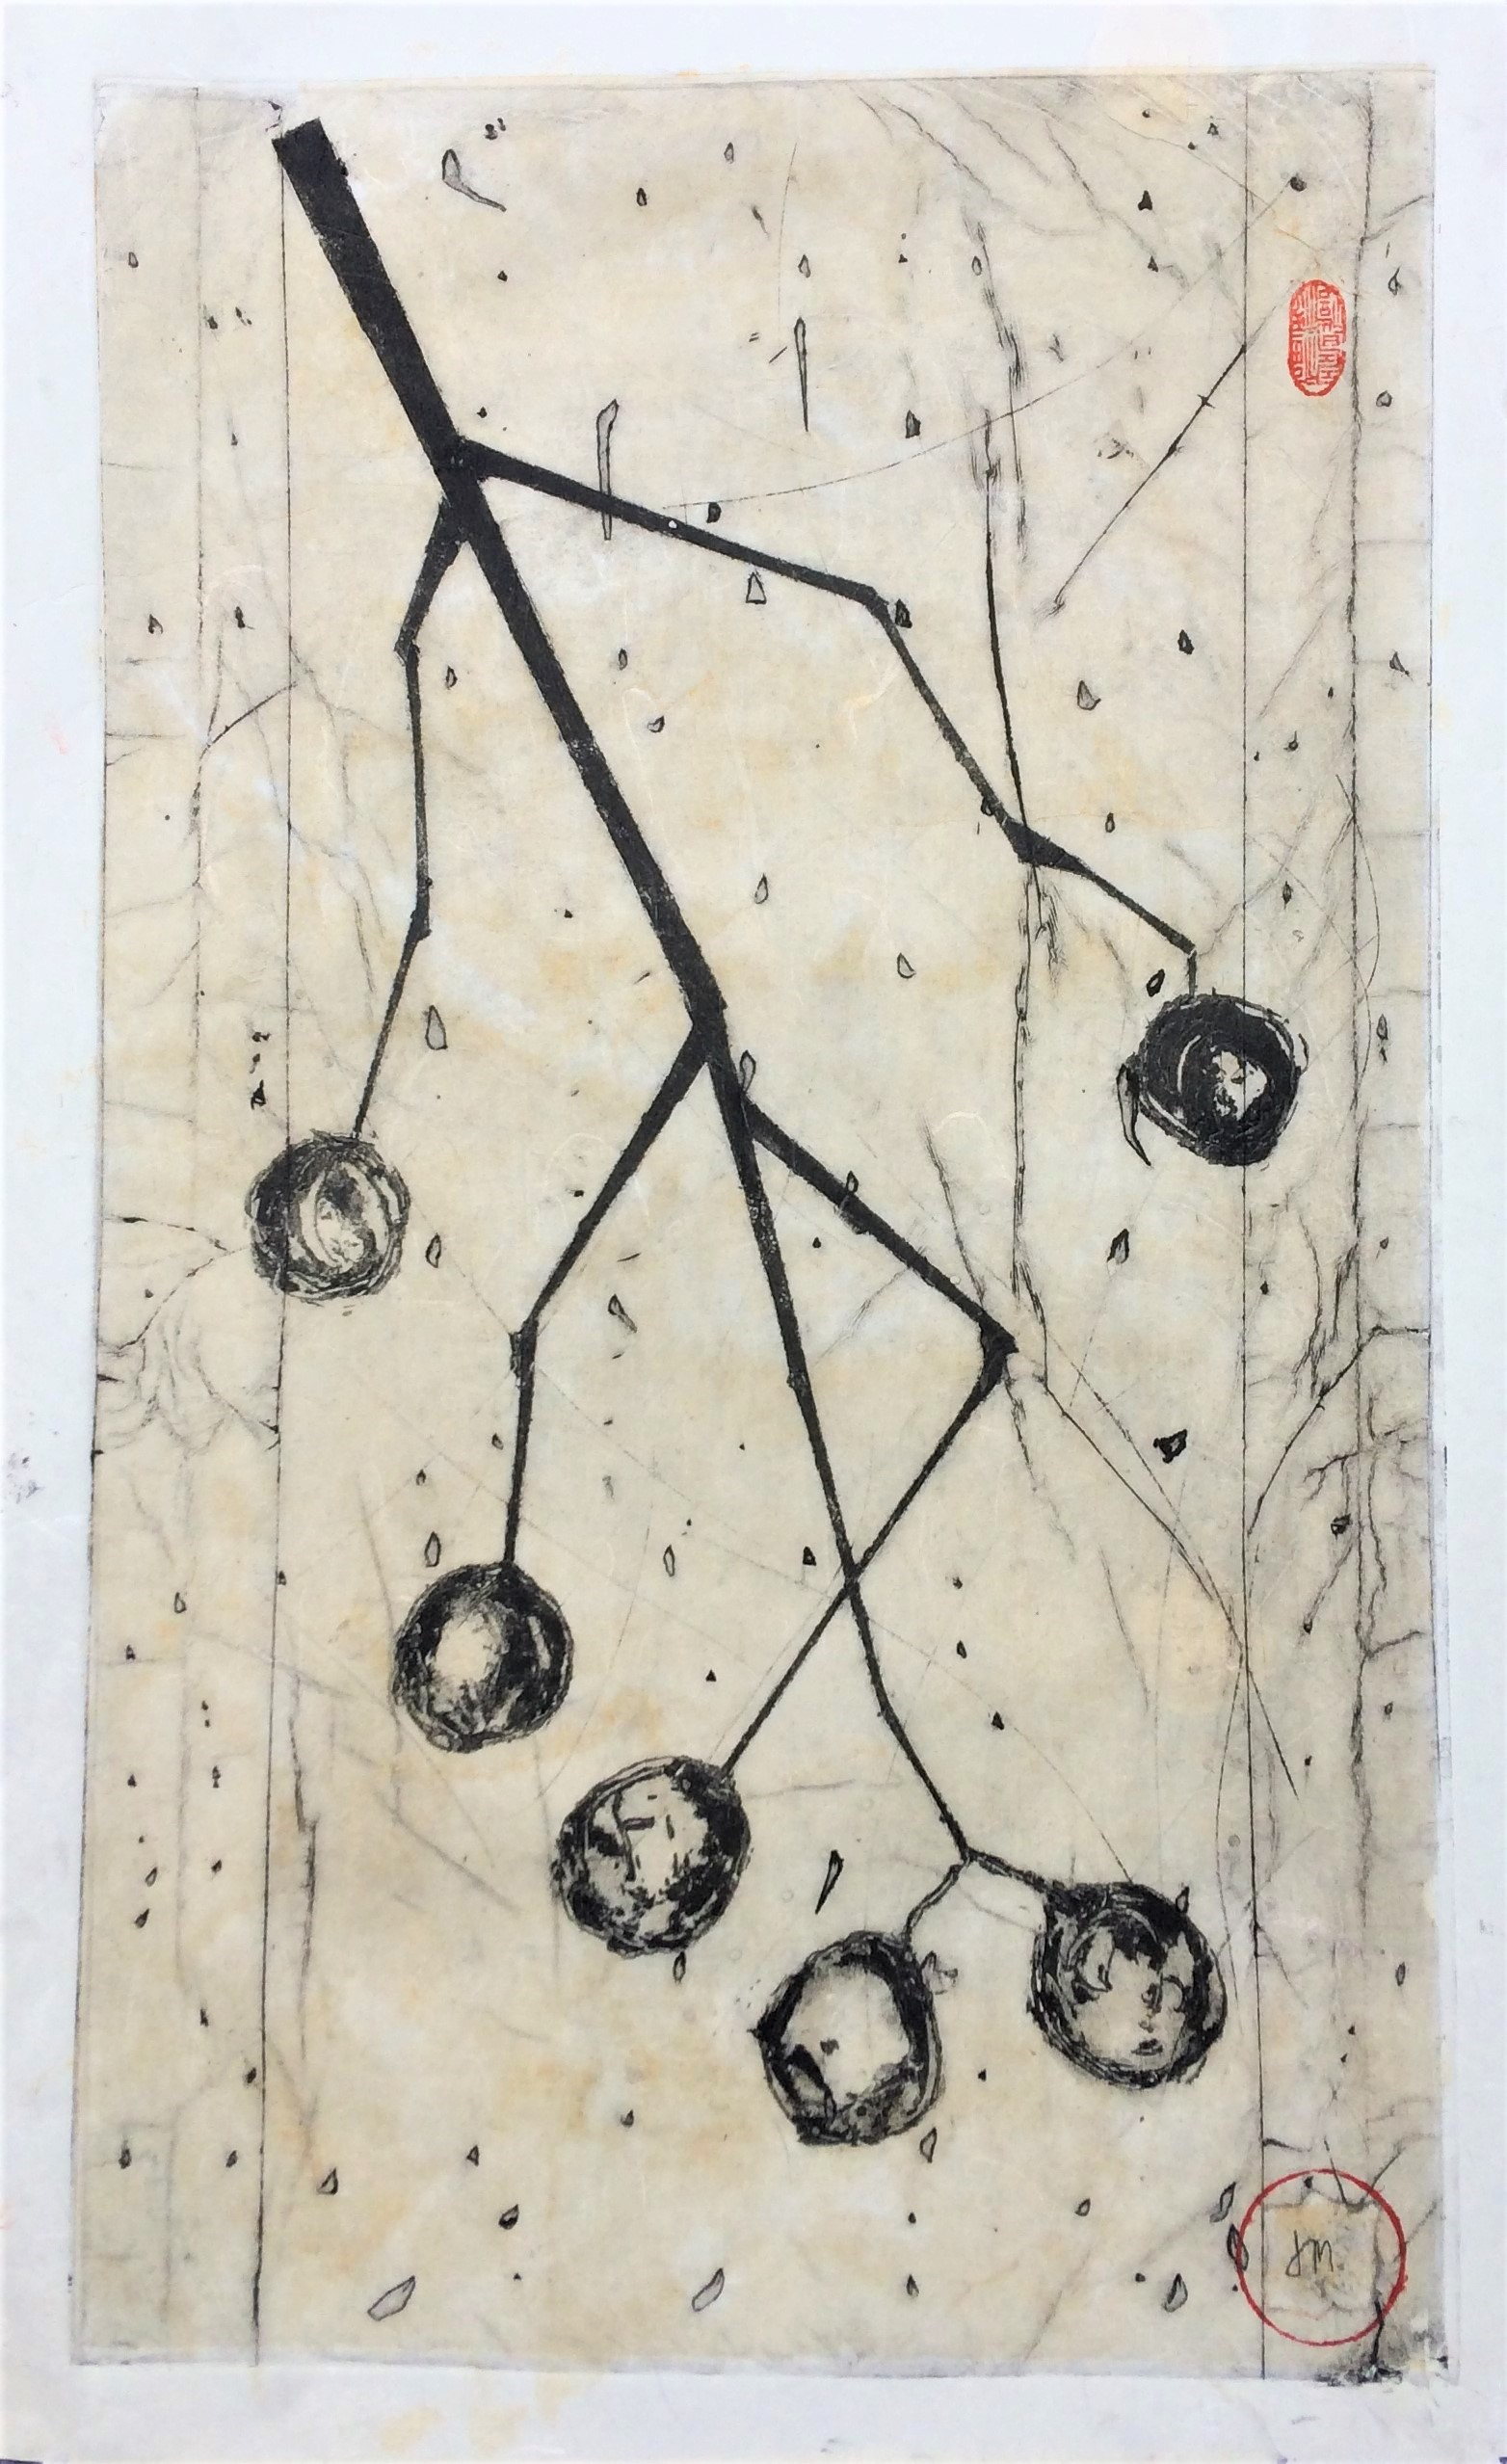 Cherries Intaglio and Collagraph on paper with silk threads. Framed - with a wide white mat and black slimbox frame